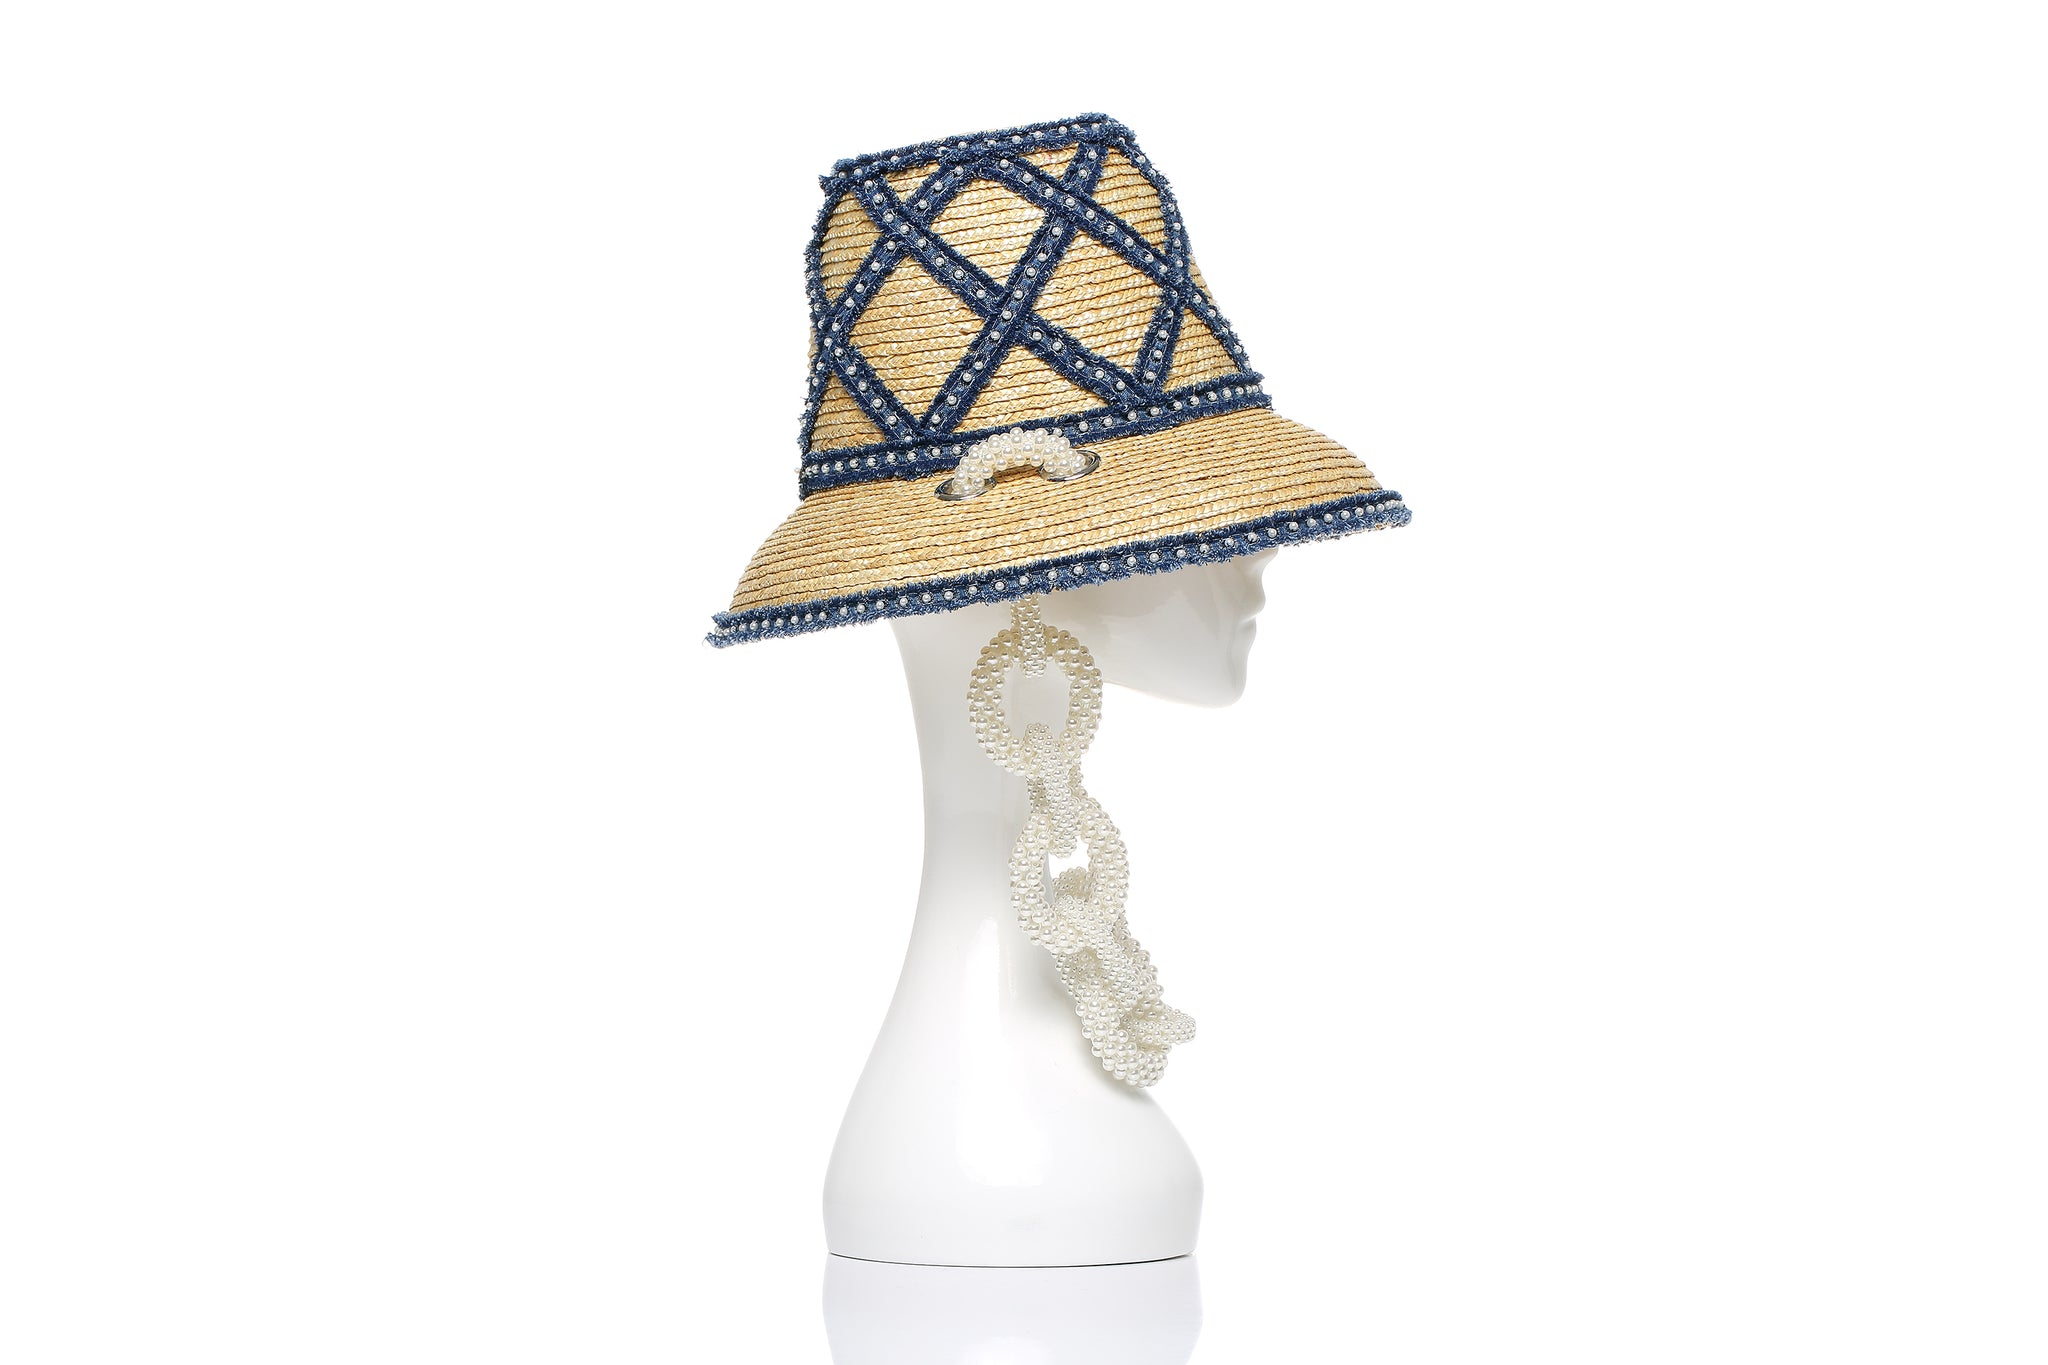 Runway Hand Woven Denim Straw Bucket Hat, Pearl Chain, Small Brim